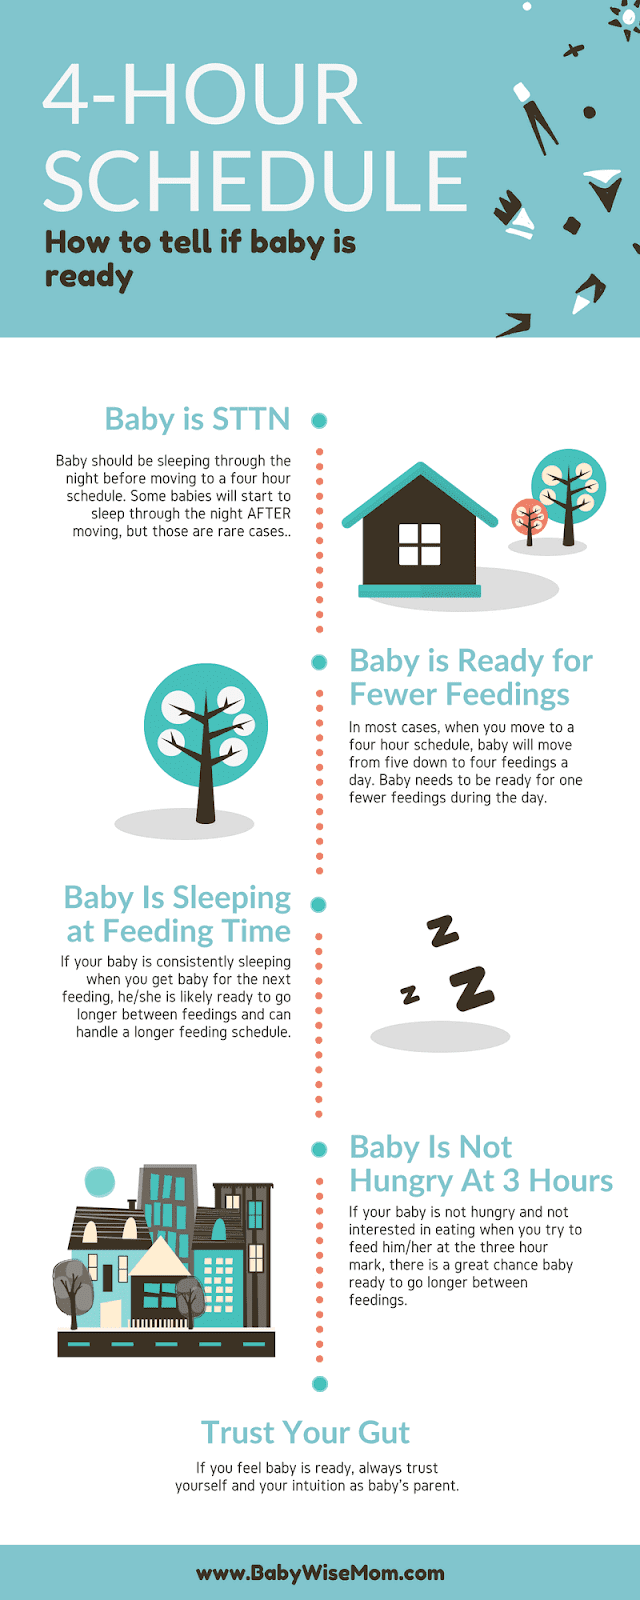 4 Hour Schedule Information. When baby is ready for a four hour schedule.